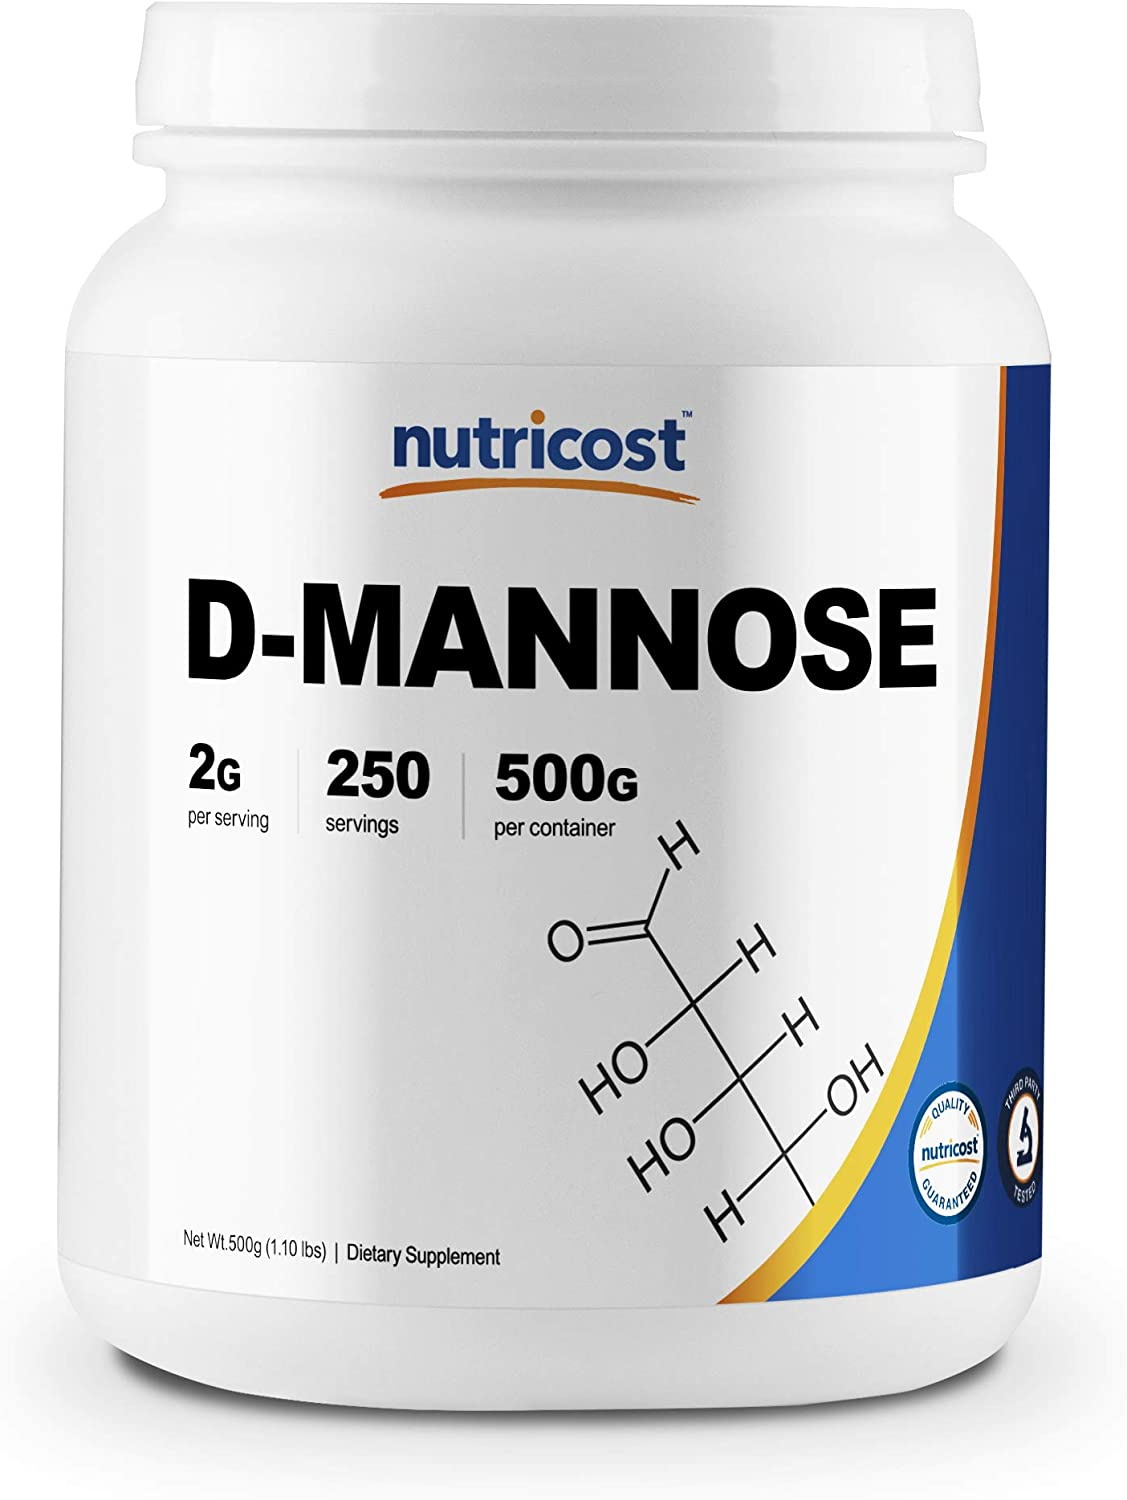 Nutricost D-Mannose Powder 500 Grams (250 Servings) - Non-GMO and Gluten Free